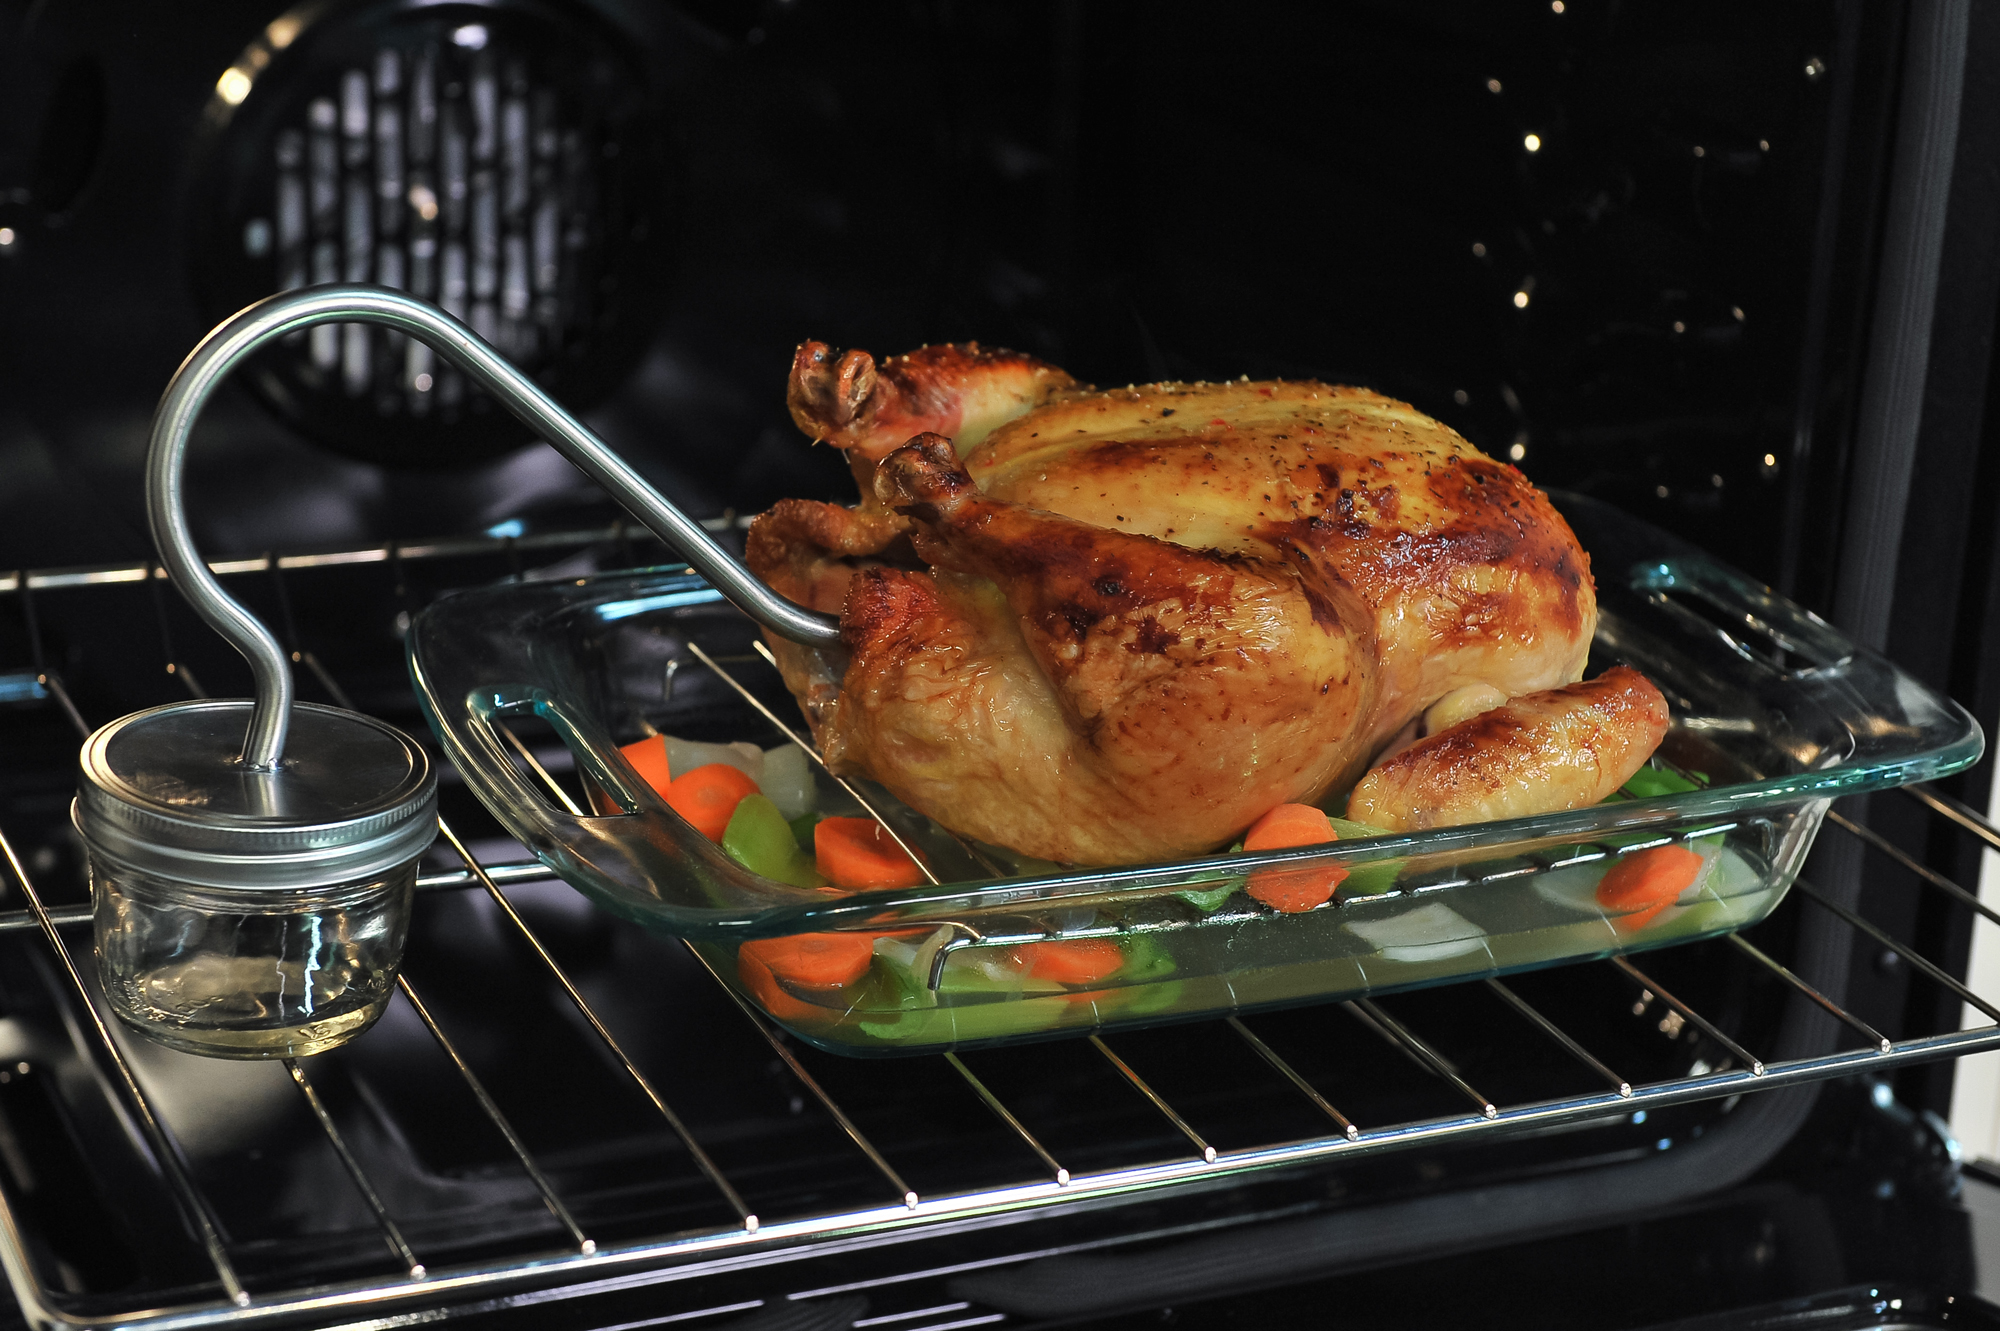 turboroaster cooks perfect poultry in half the time | kitchenware